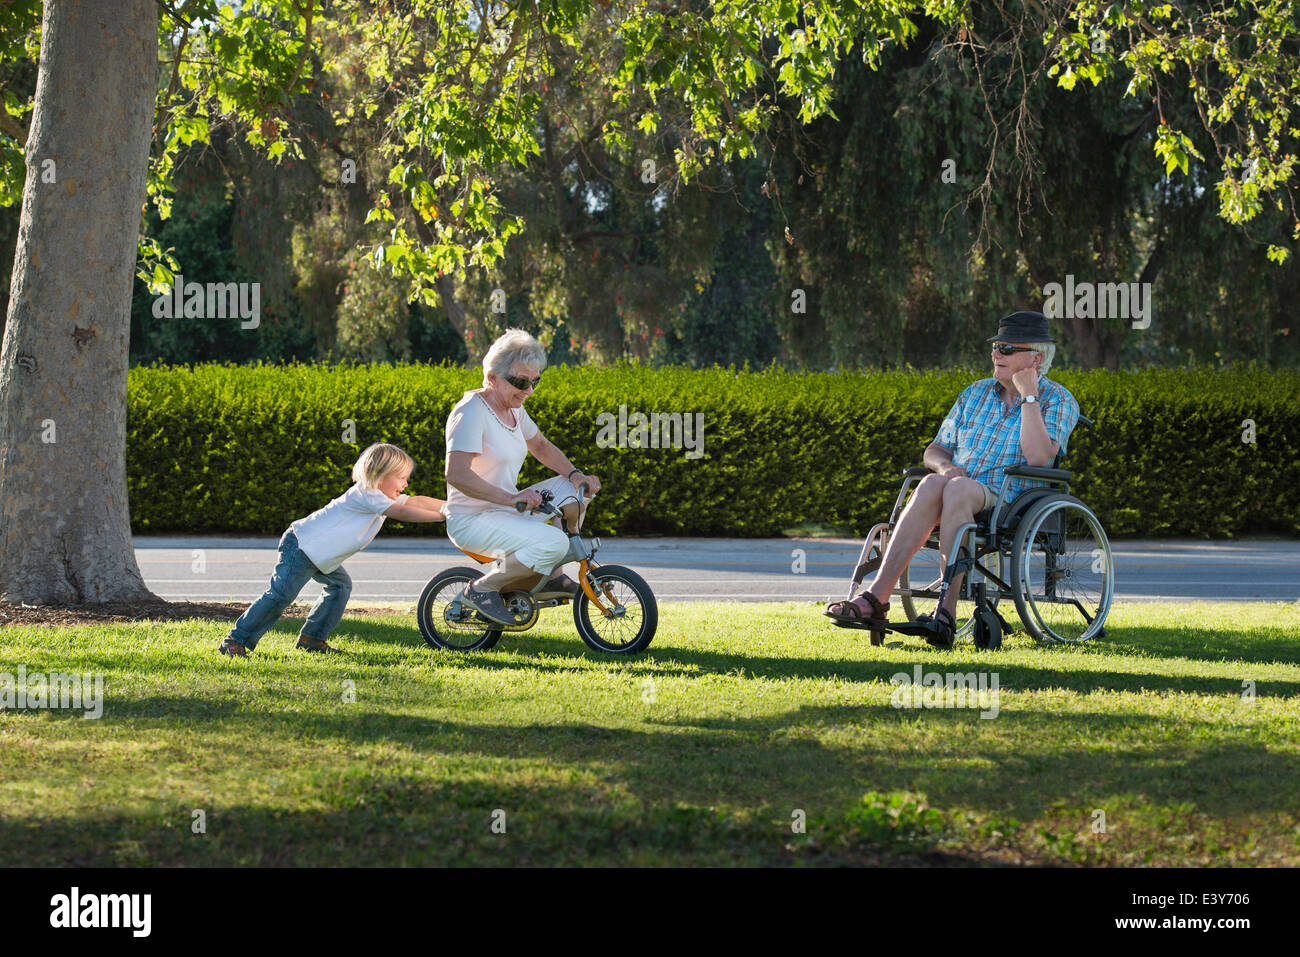 Three year old boy pushing grandmother on cycle with grandfather watching from wheelchair - Stock Image